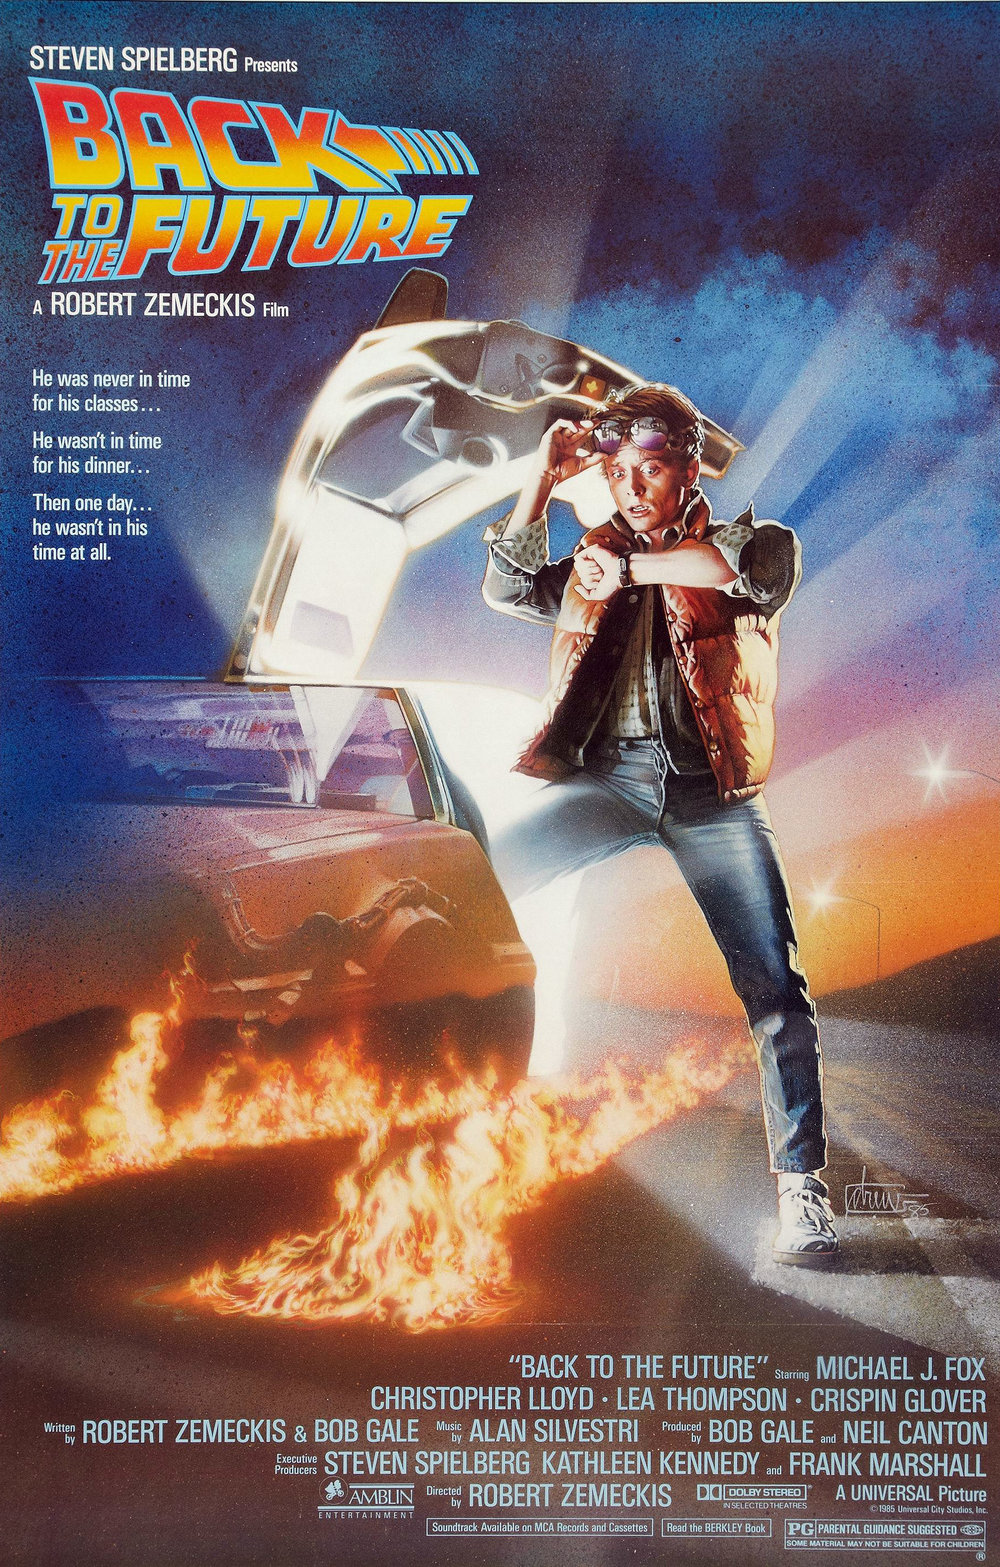 BACK TO THE FUTURE (1985) Spoken my Doc Brown/Christopher Lloyd